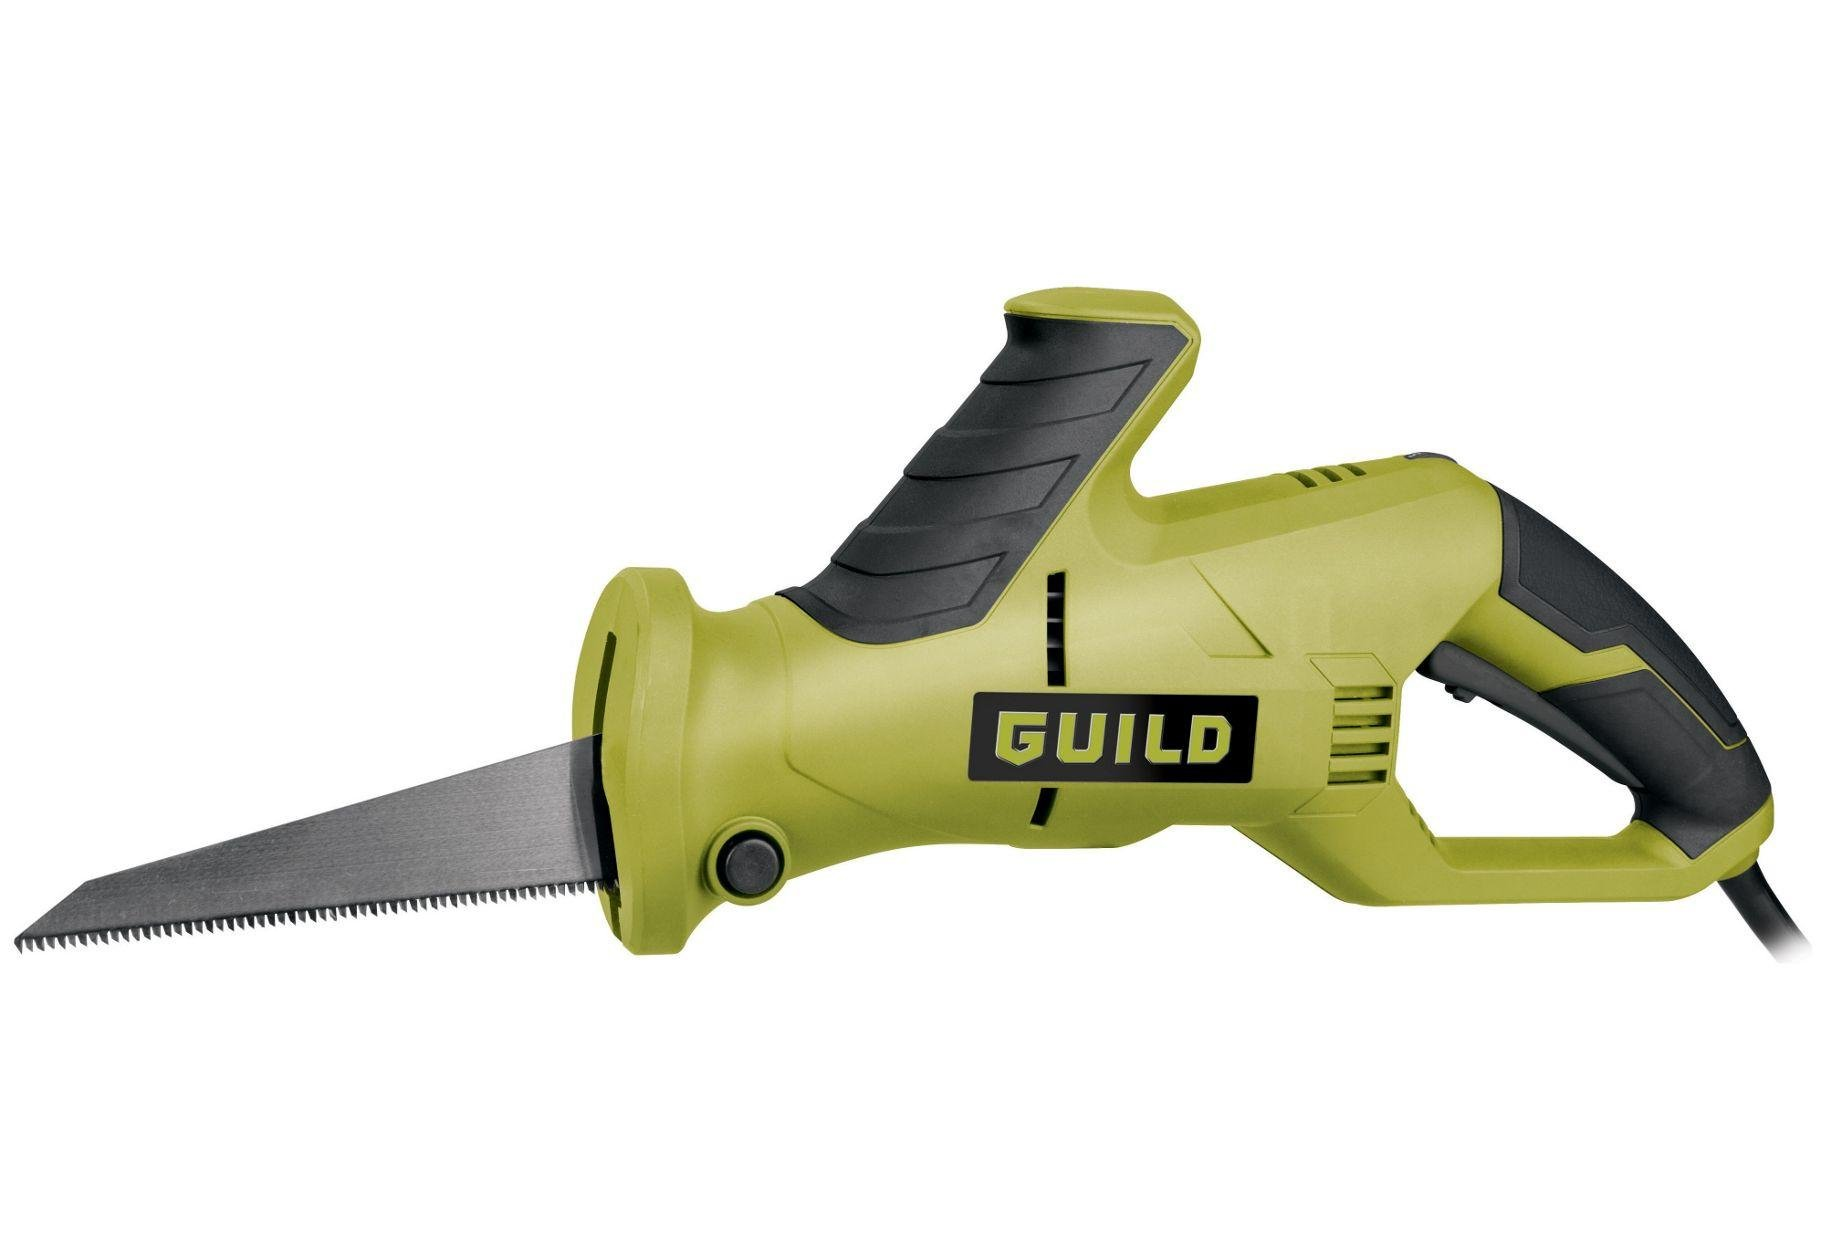 Guild Multi Function Shark Saw 500w